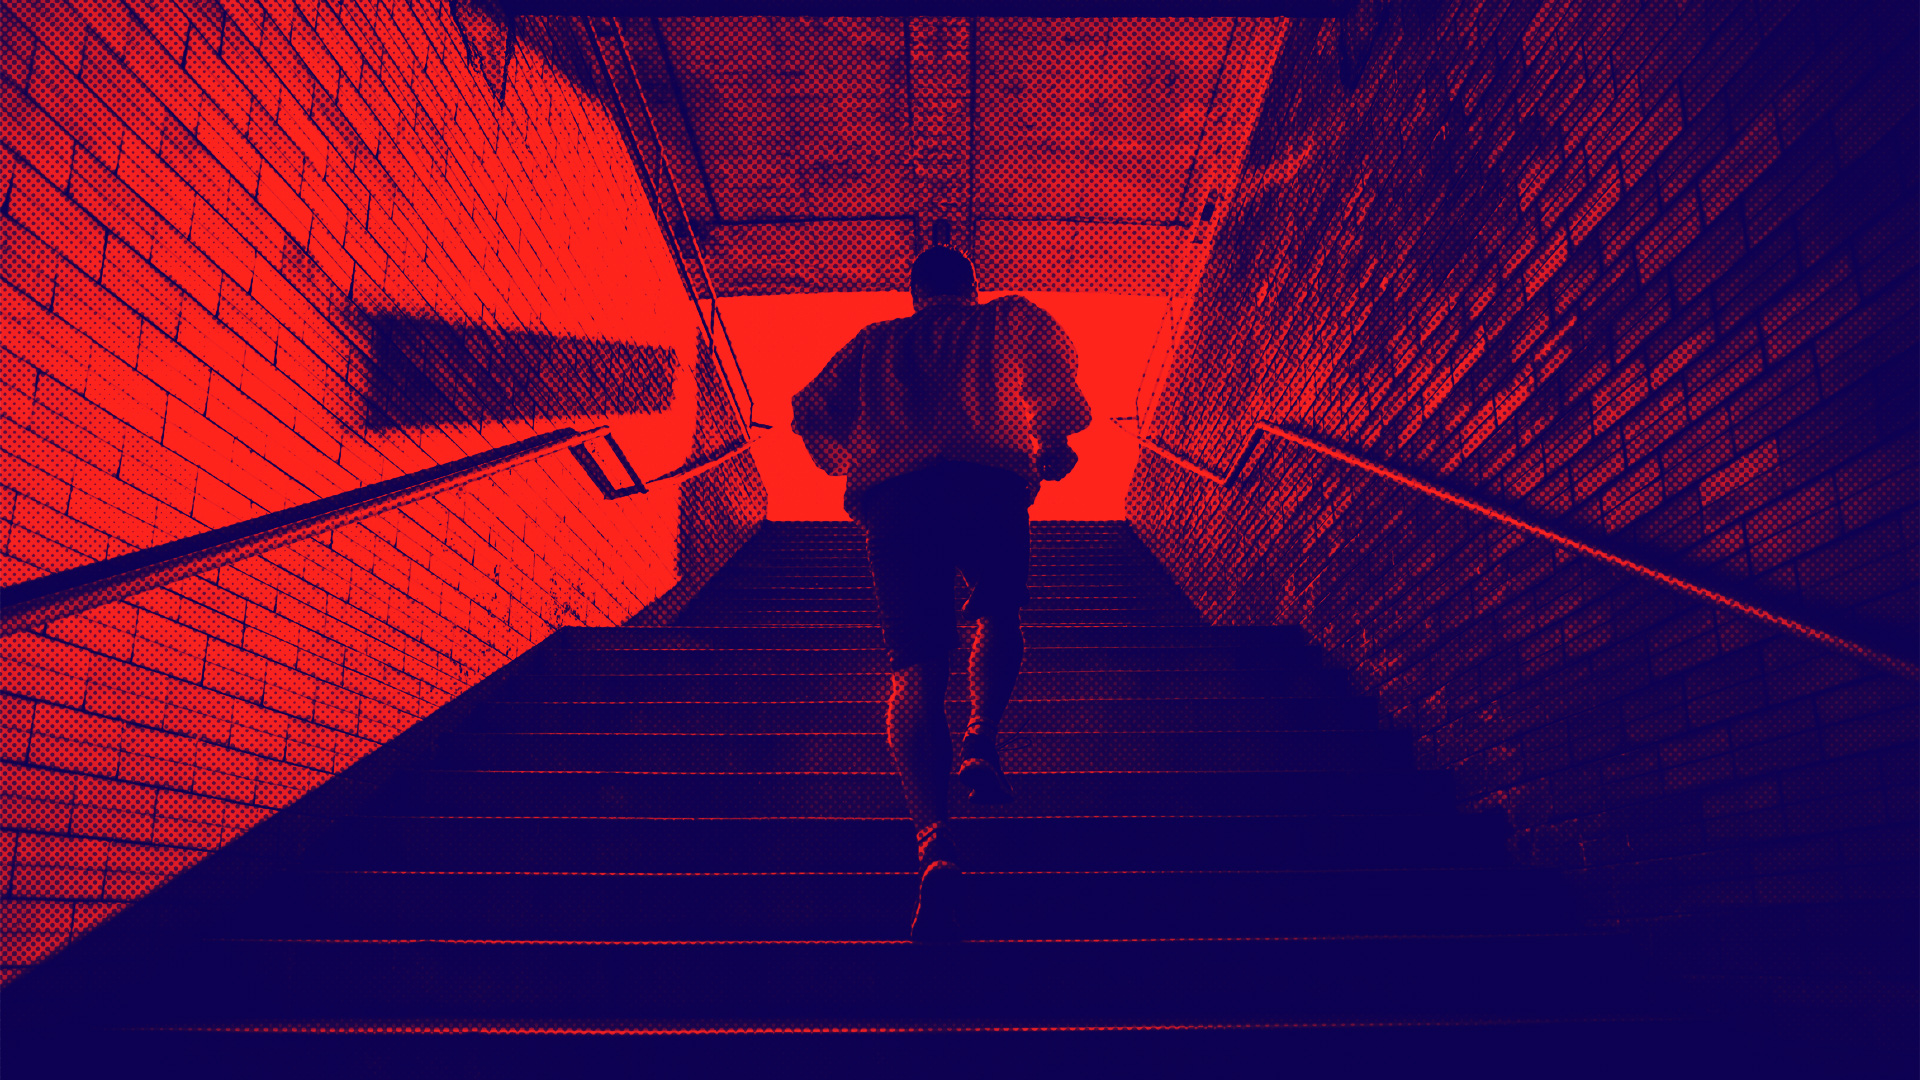 Man running up stairs image